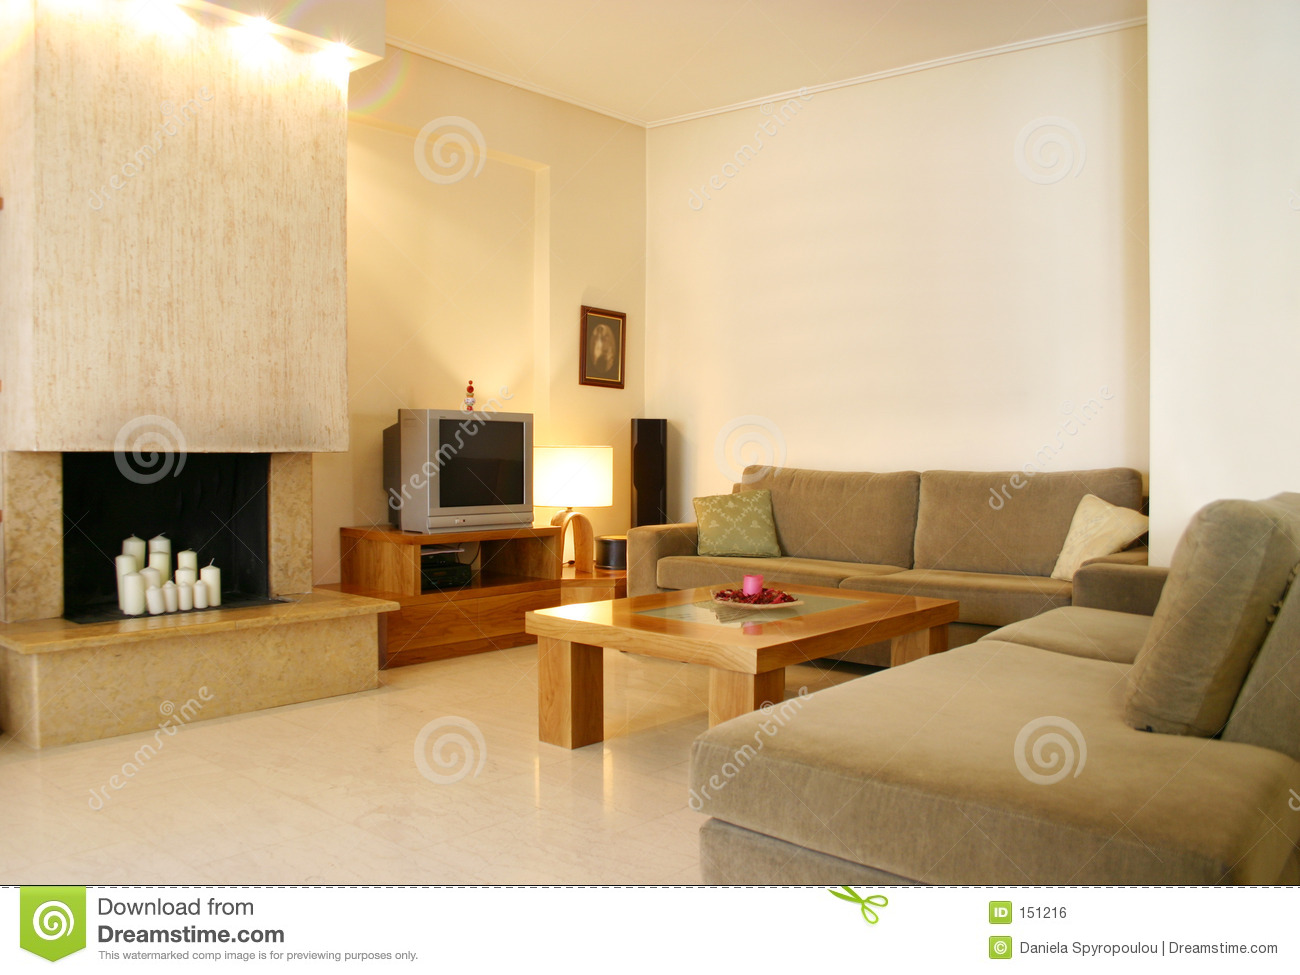 Contemporary Design Home Interior Royalty Free Stock Image 151216